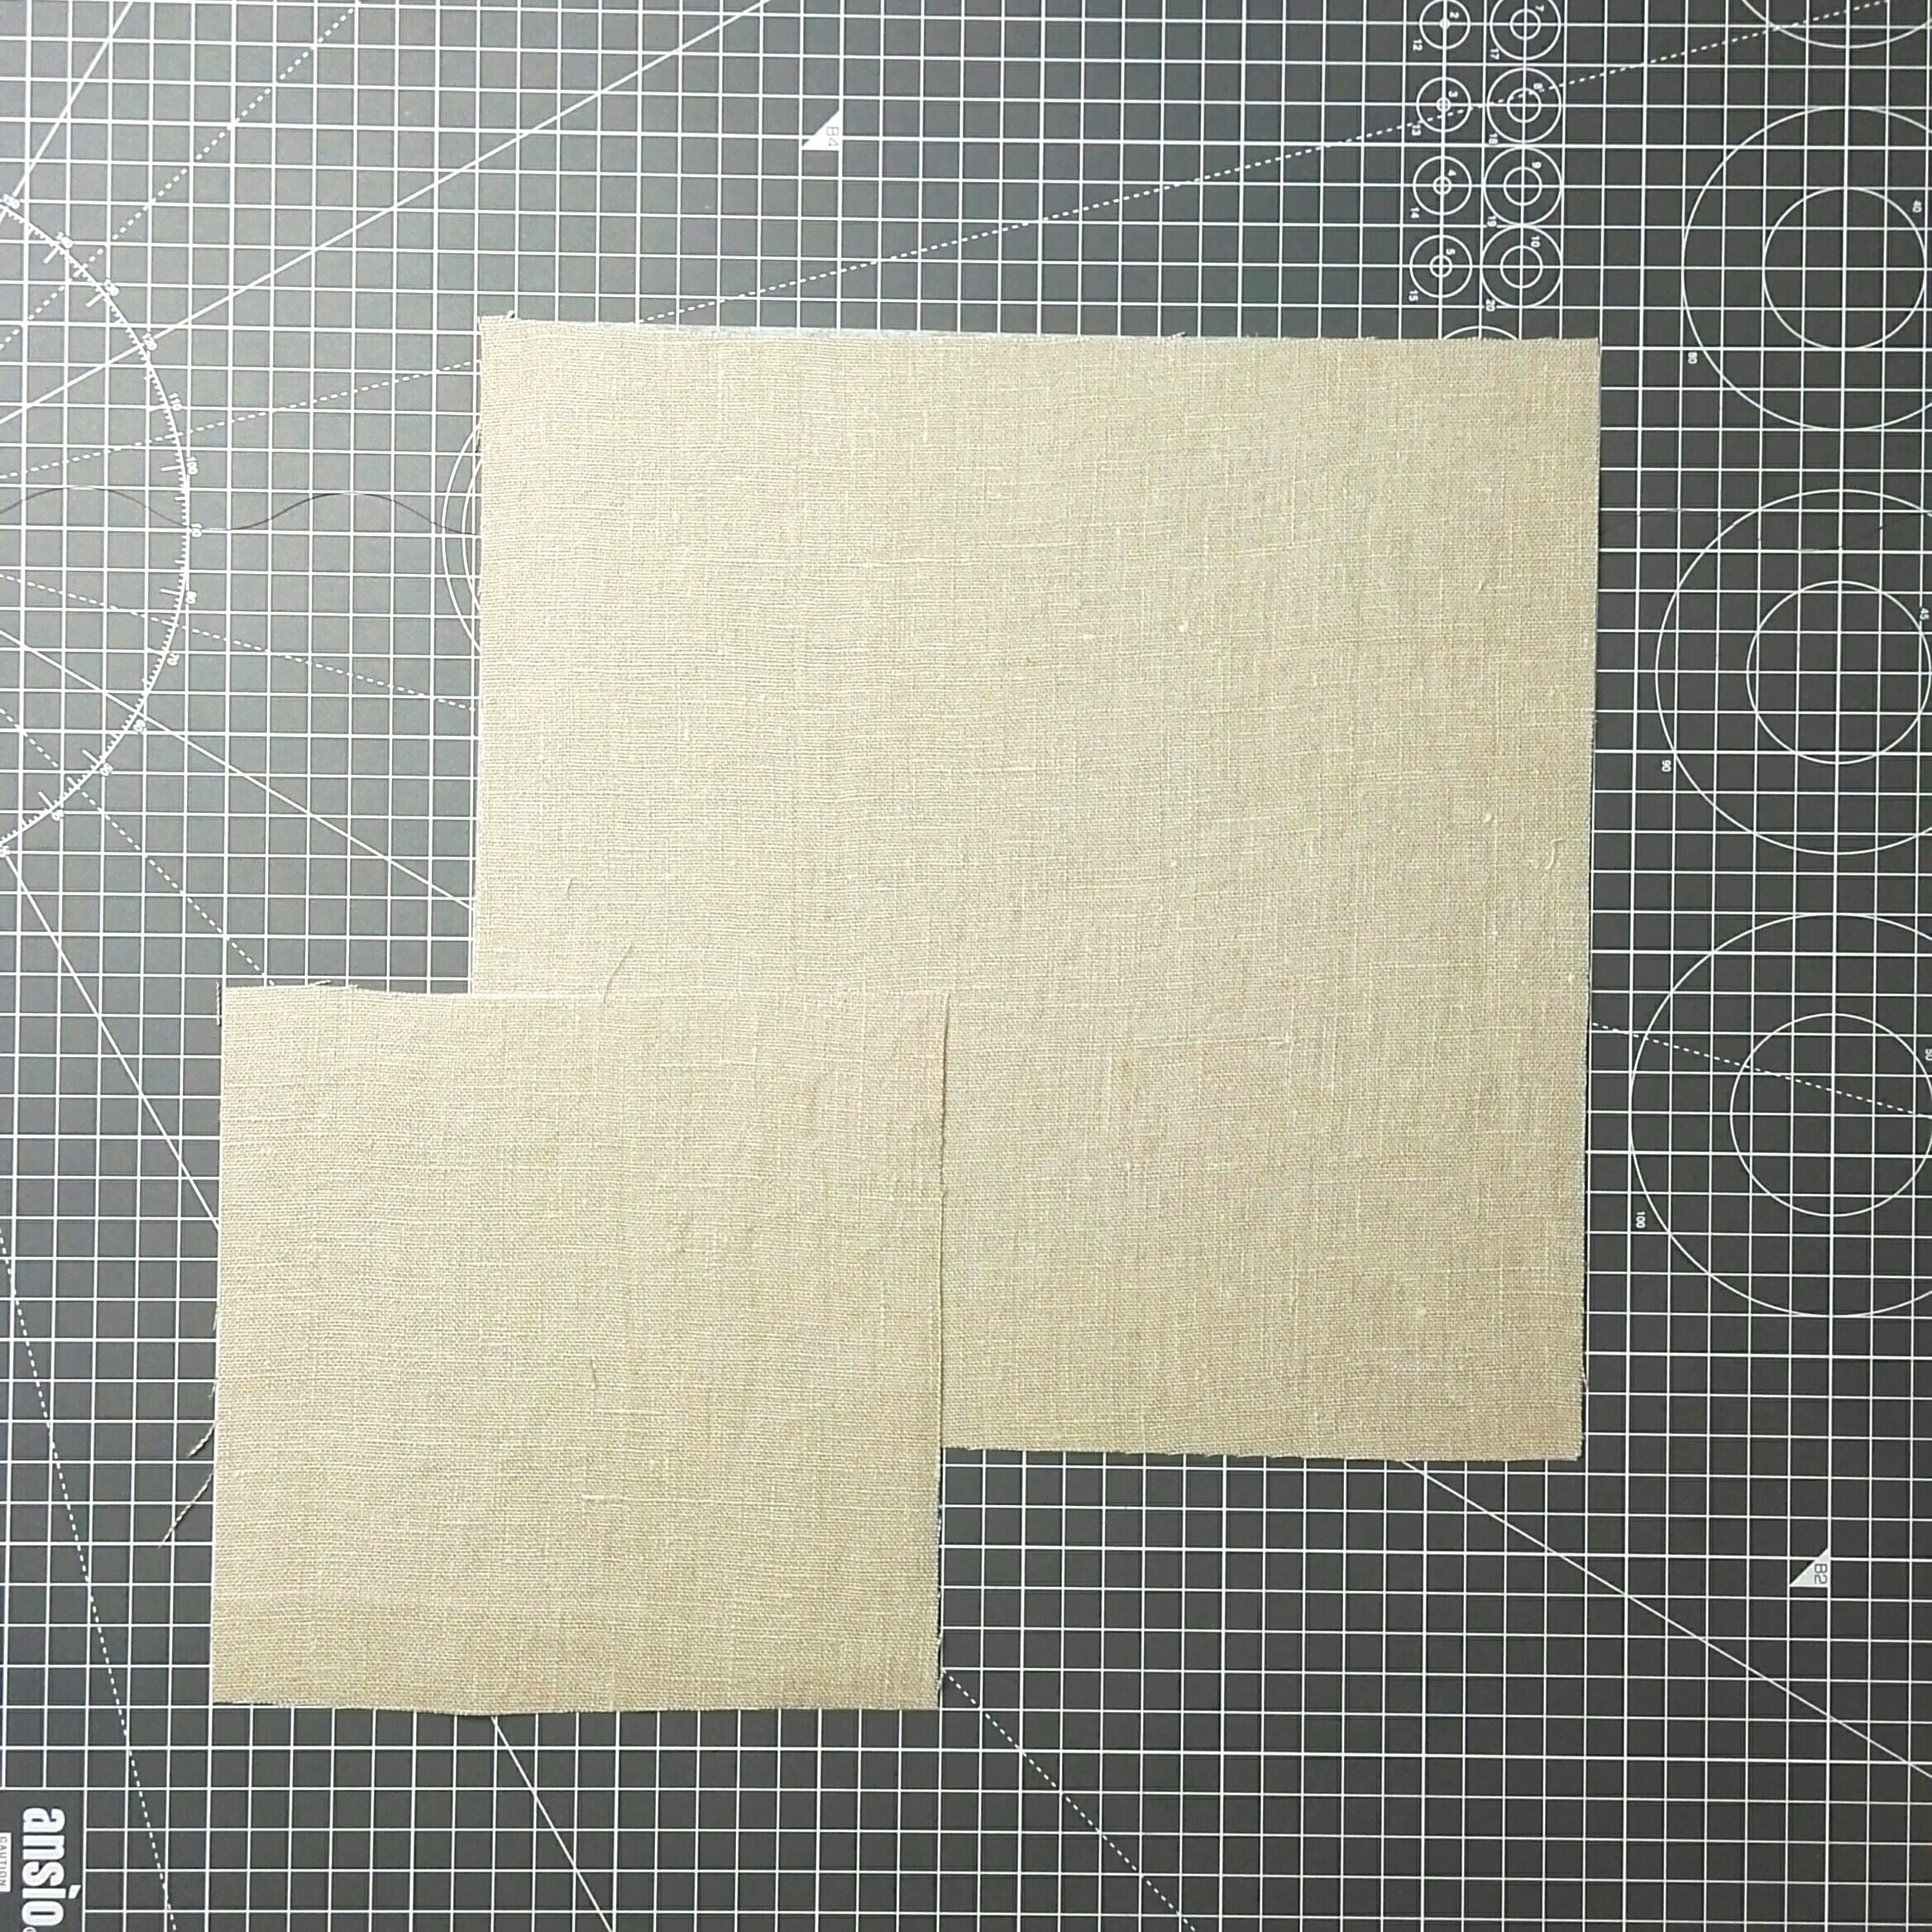 Cut the background fabric